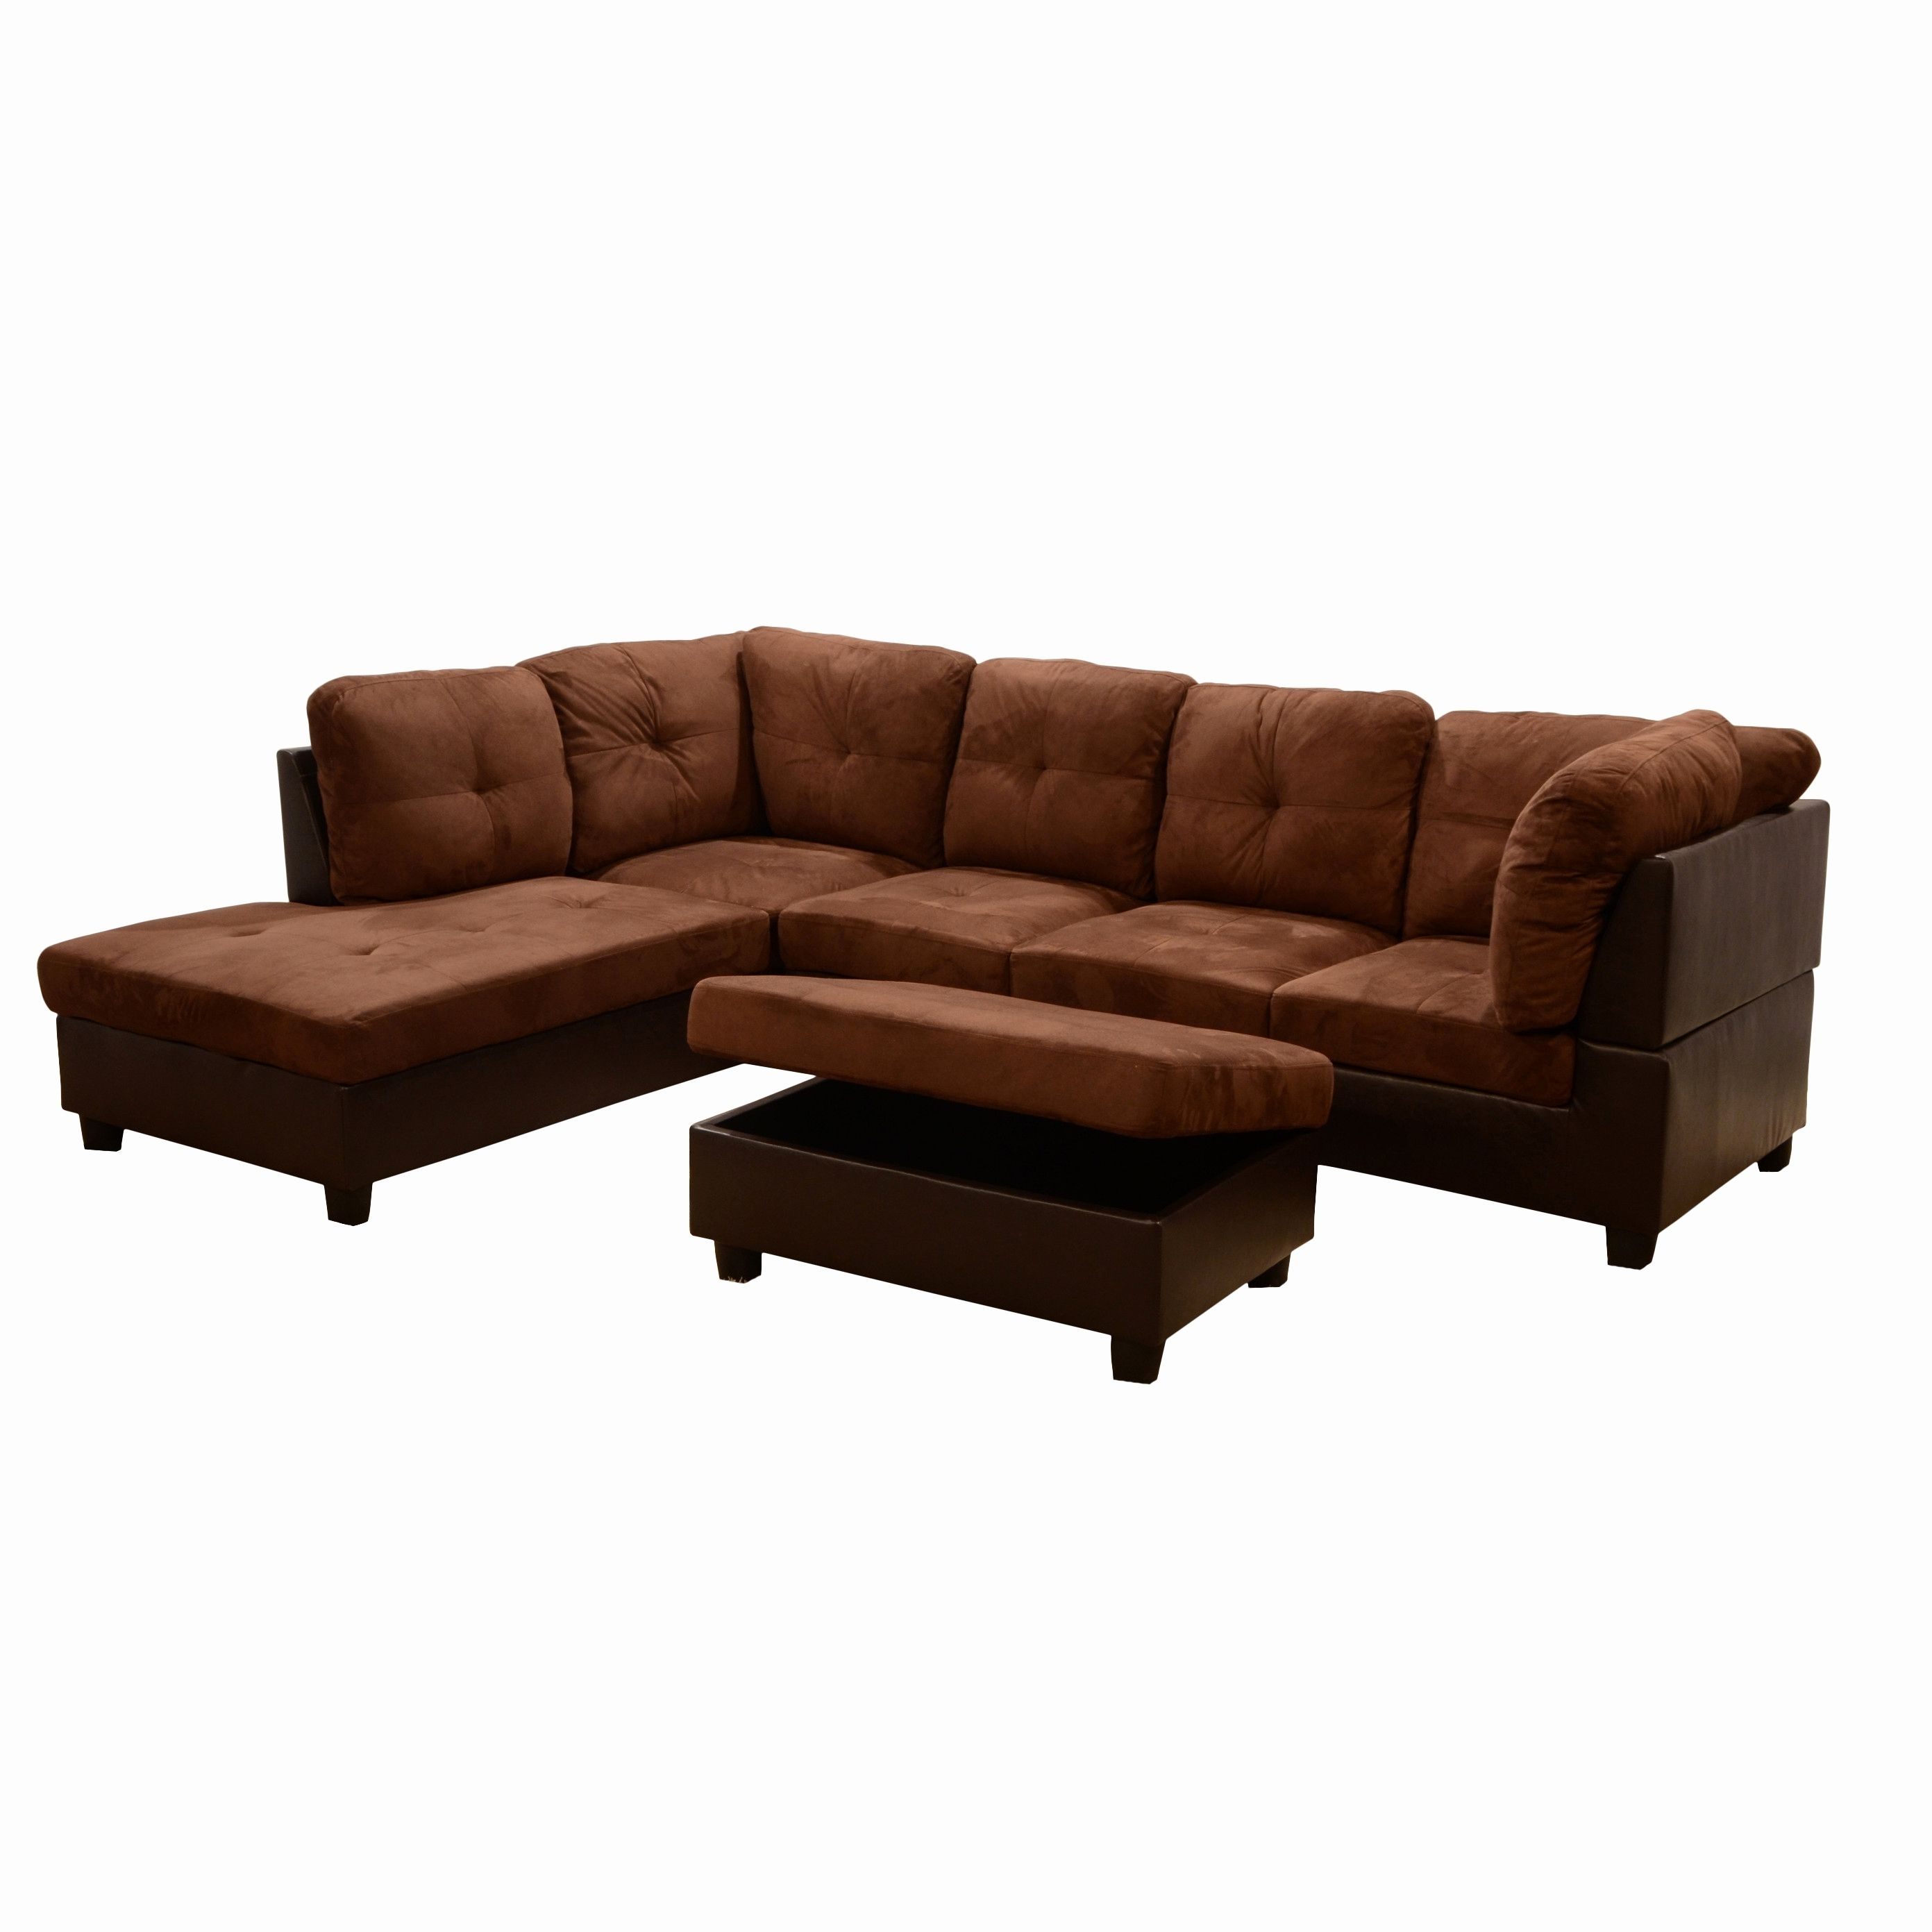 Luxury Small Leather Sectional Sofa Images Furniture Leather Regarding Gallery Furniture Sectional Sofas (View 7 of 10)